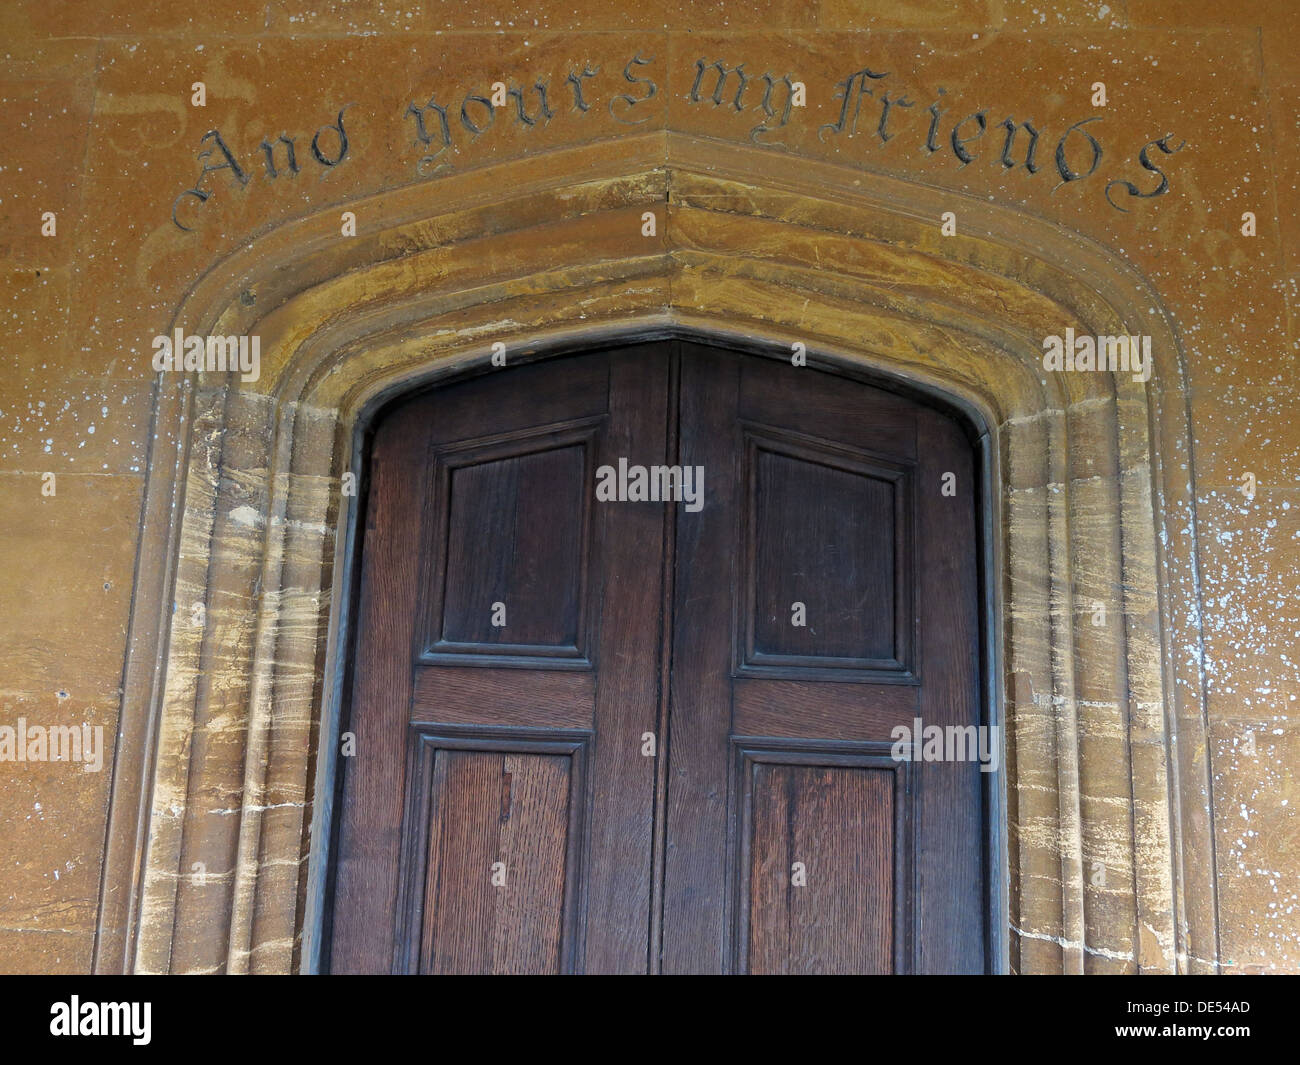 And,Yours,My,Friends,Somerset,England,UK,honey,color,colour,stone,door,way,doorway,GoTonySmith,@HotpixUK,Buy Pictures of,Buy Images Of,Images of,Stock Images